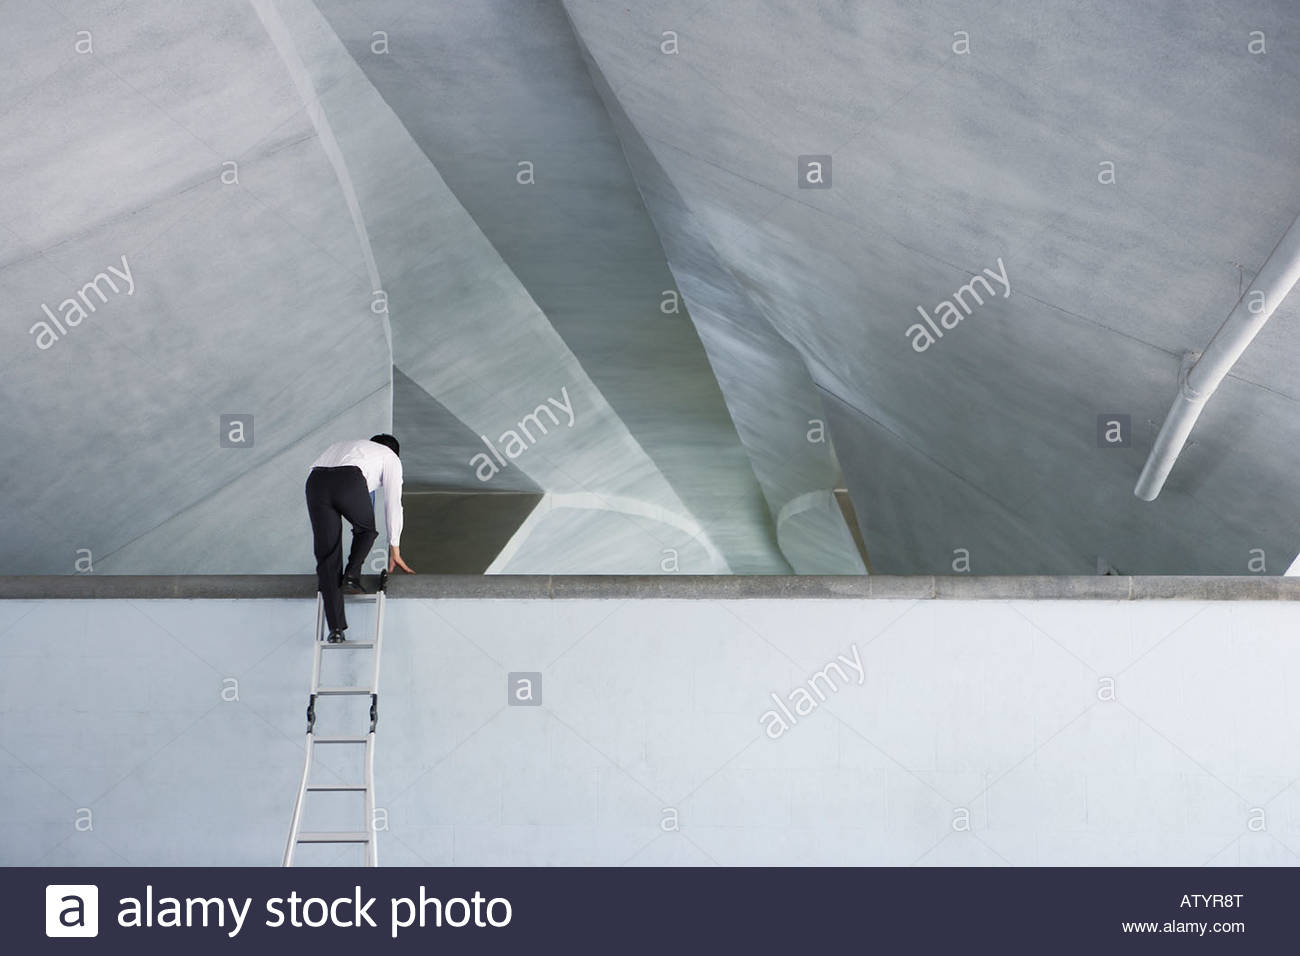 Businessman indoors using ladder to climb over structure - Stock Image